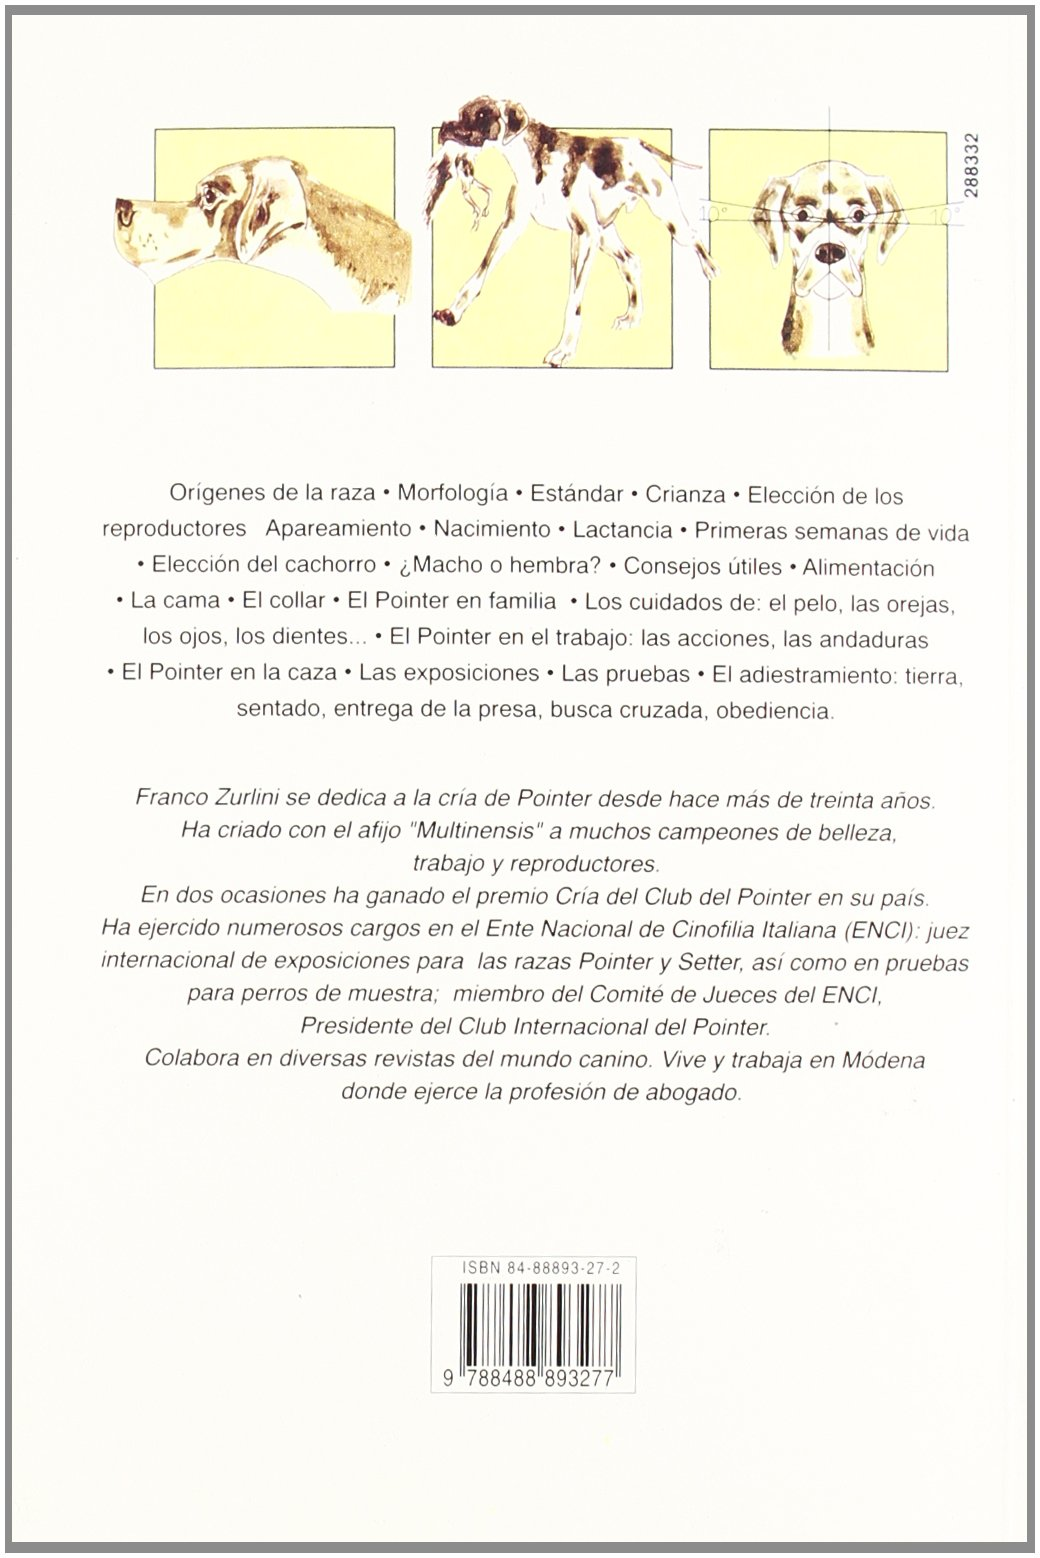 El Pointer (Spanish Edition): Franco Zurlini: 9788488893277: Amazon.com: Books